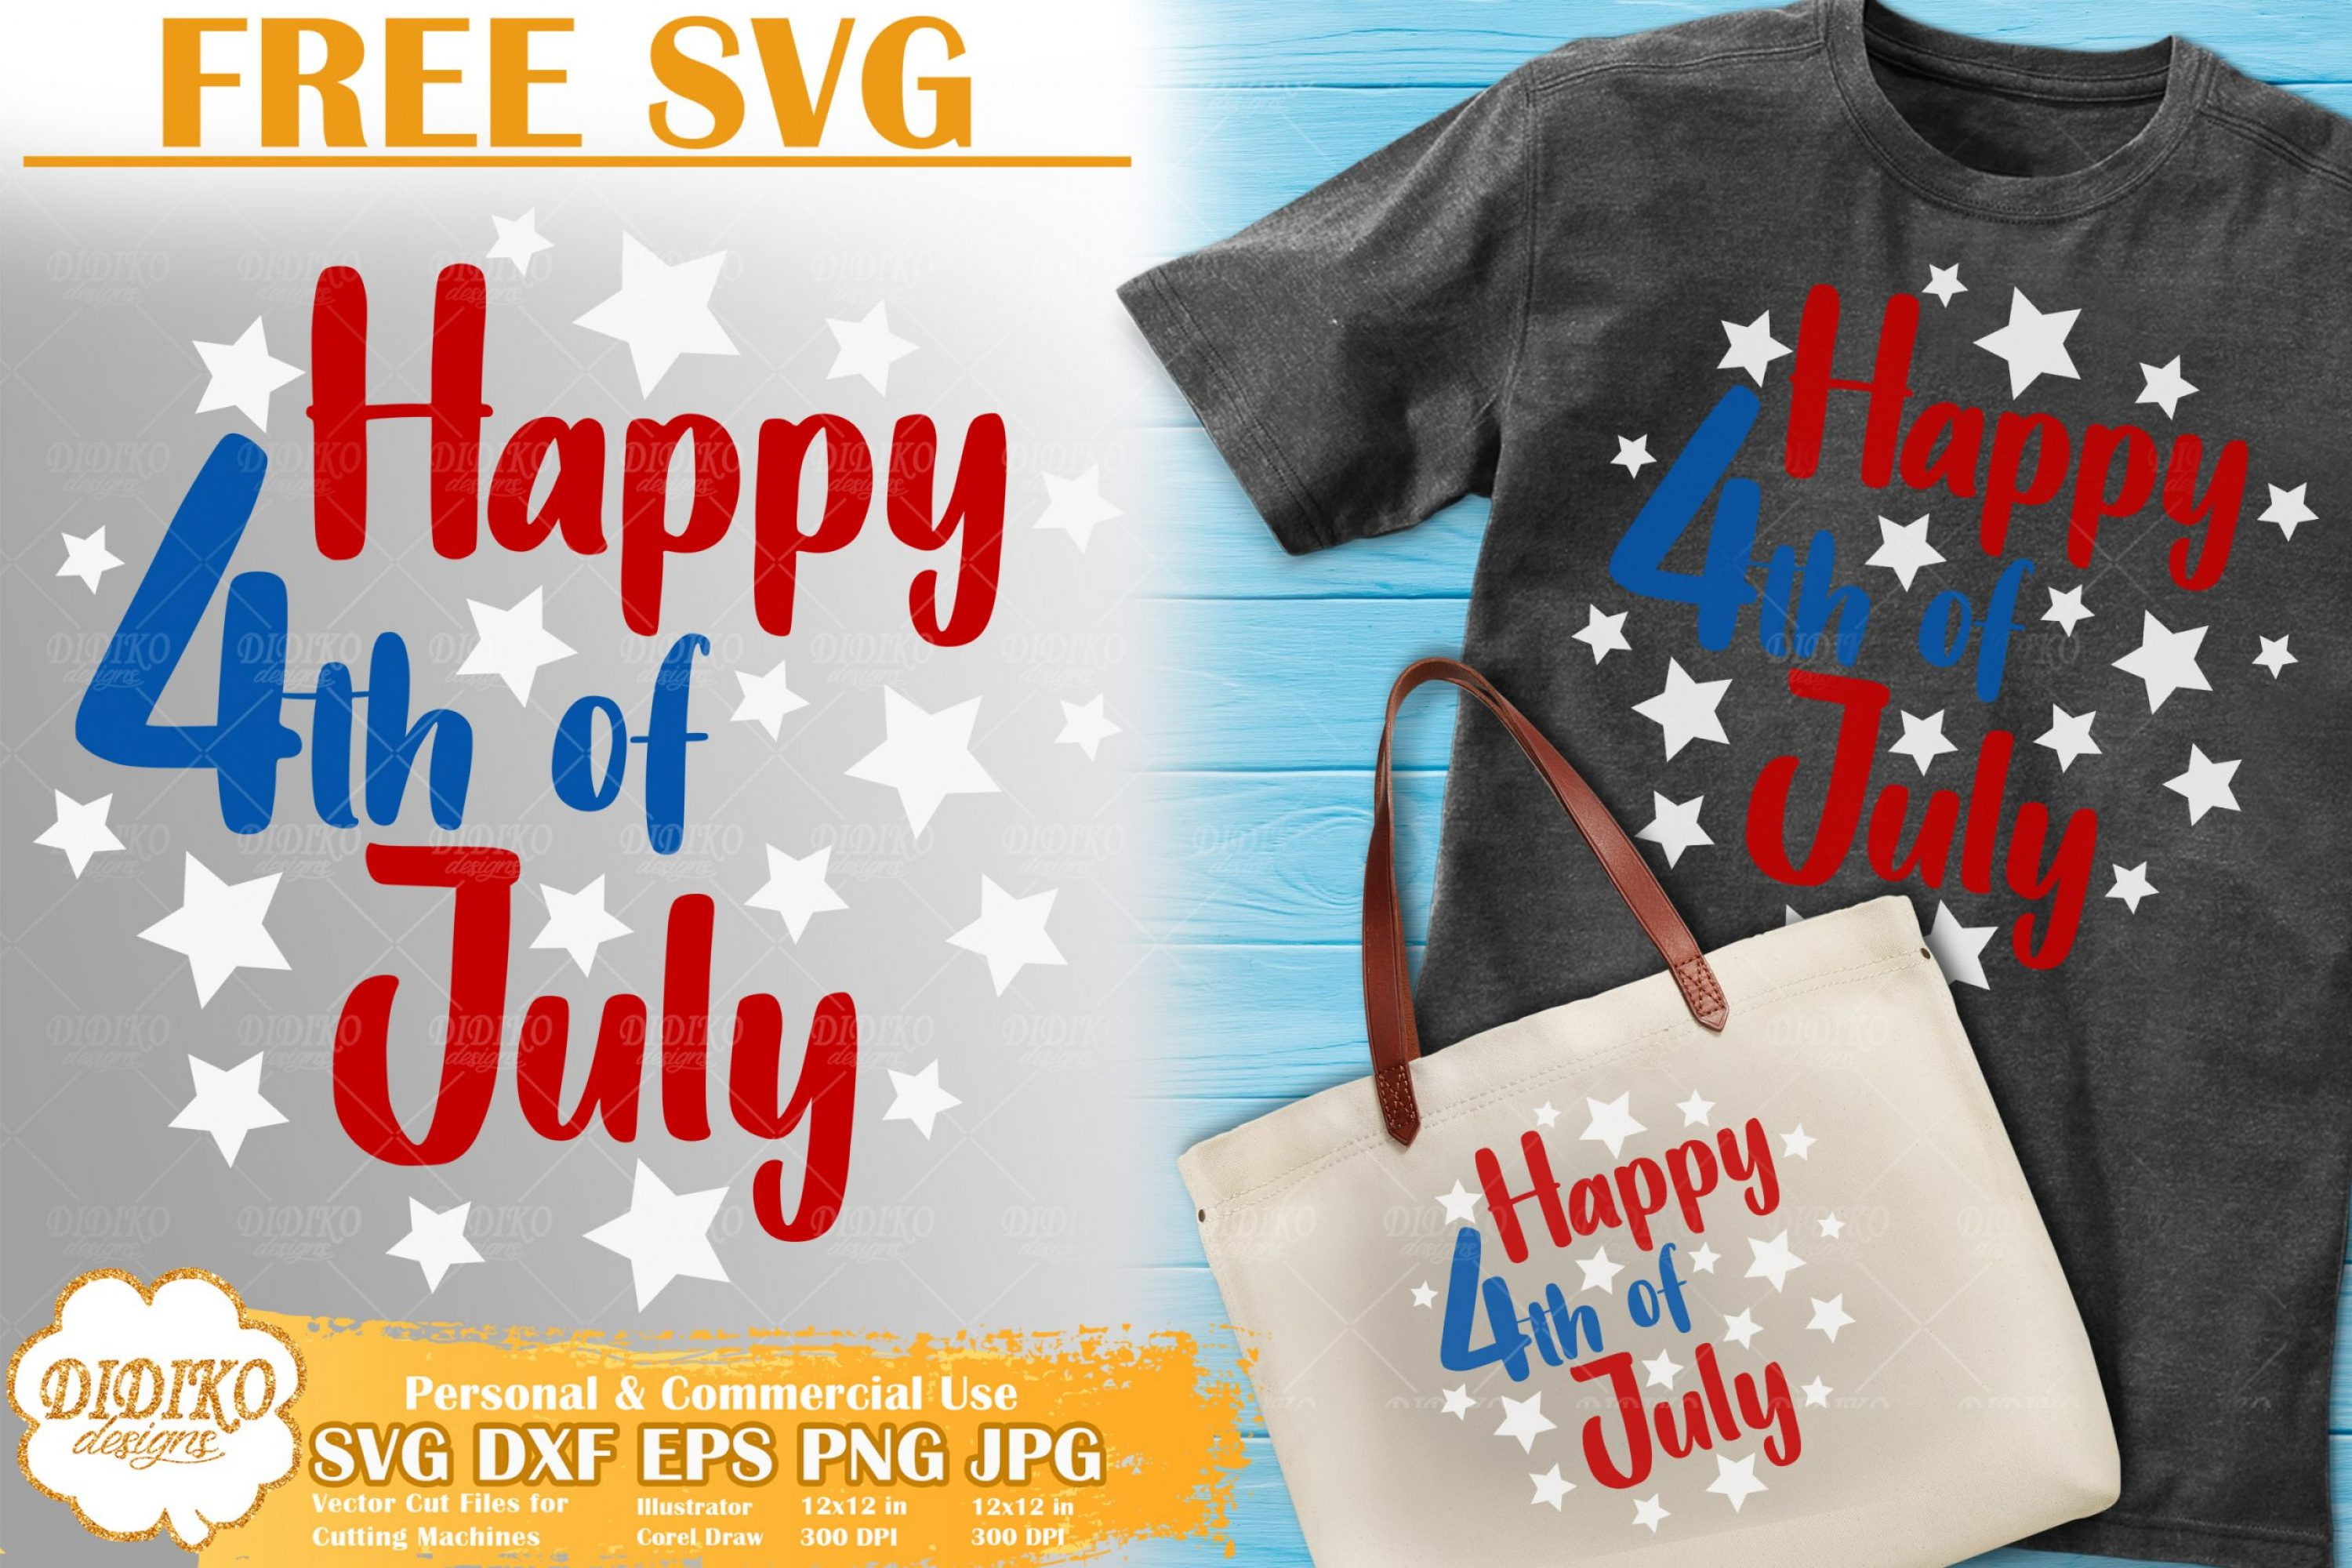 Happy 4th of July Free SVG | Free SVG Cricut File